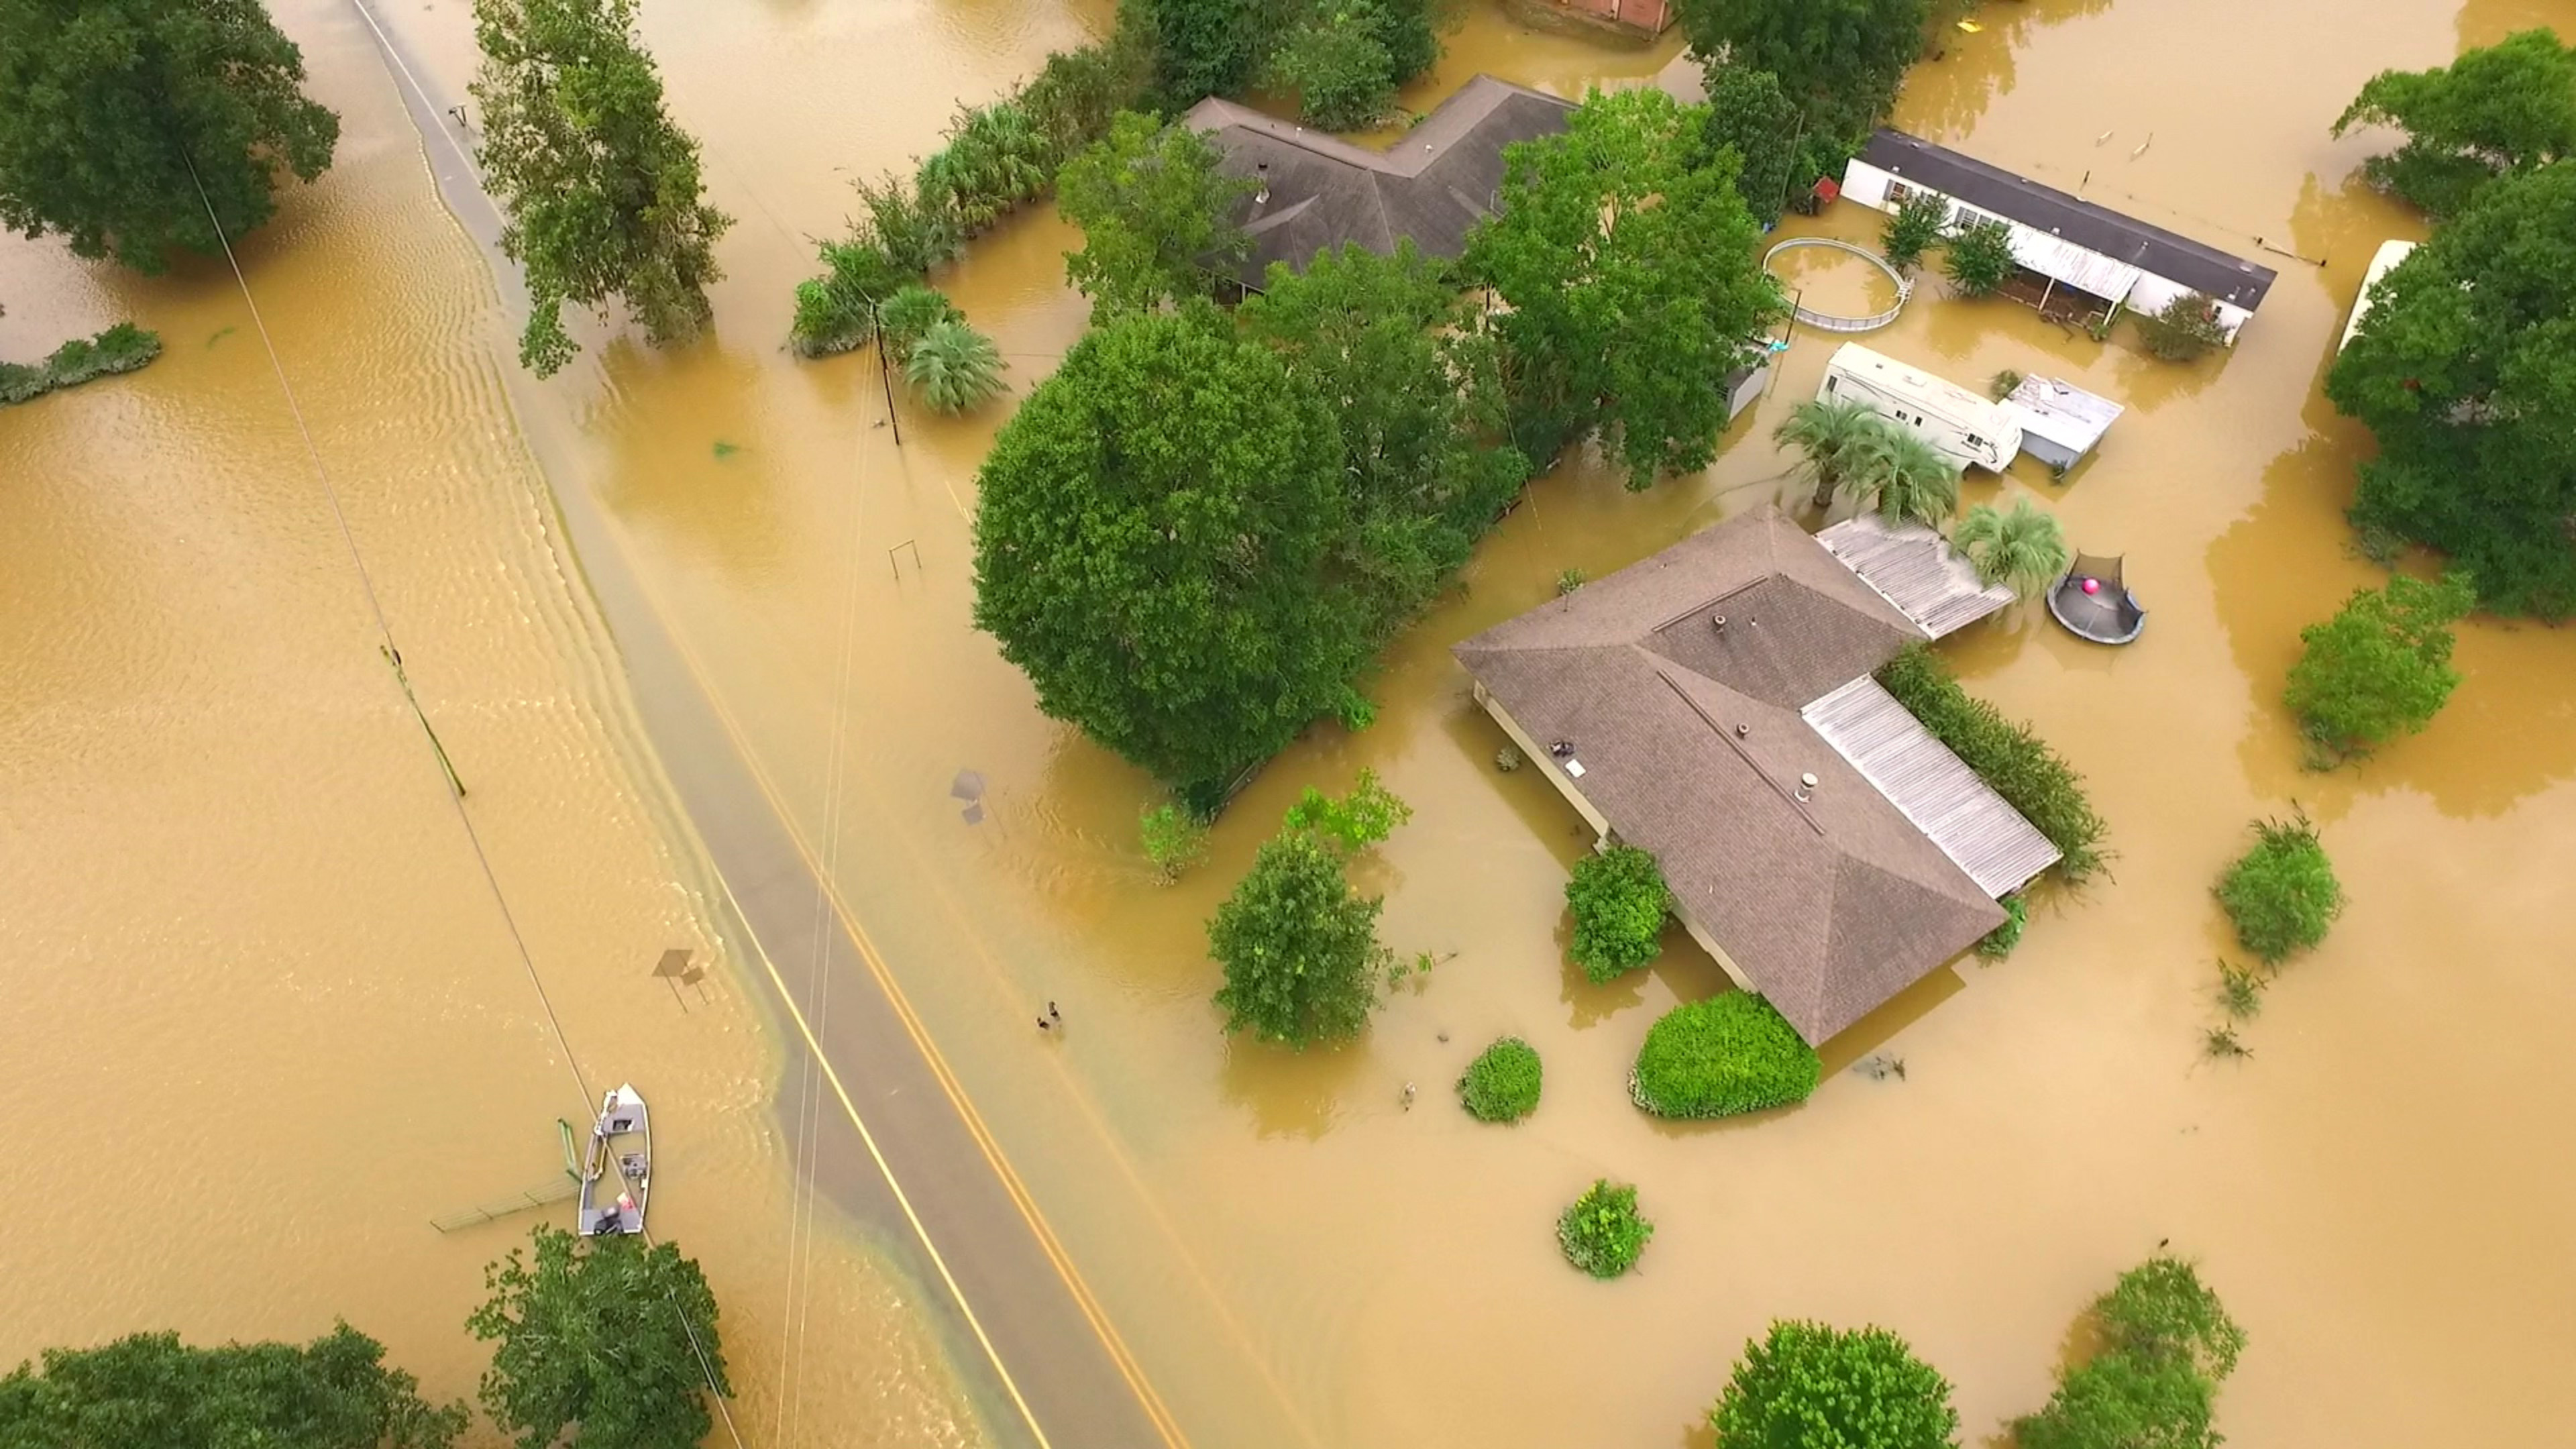 flood aerial footage